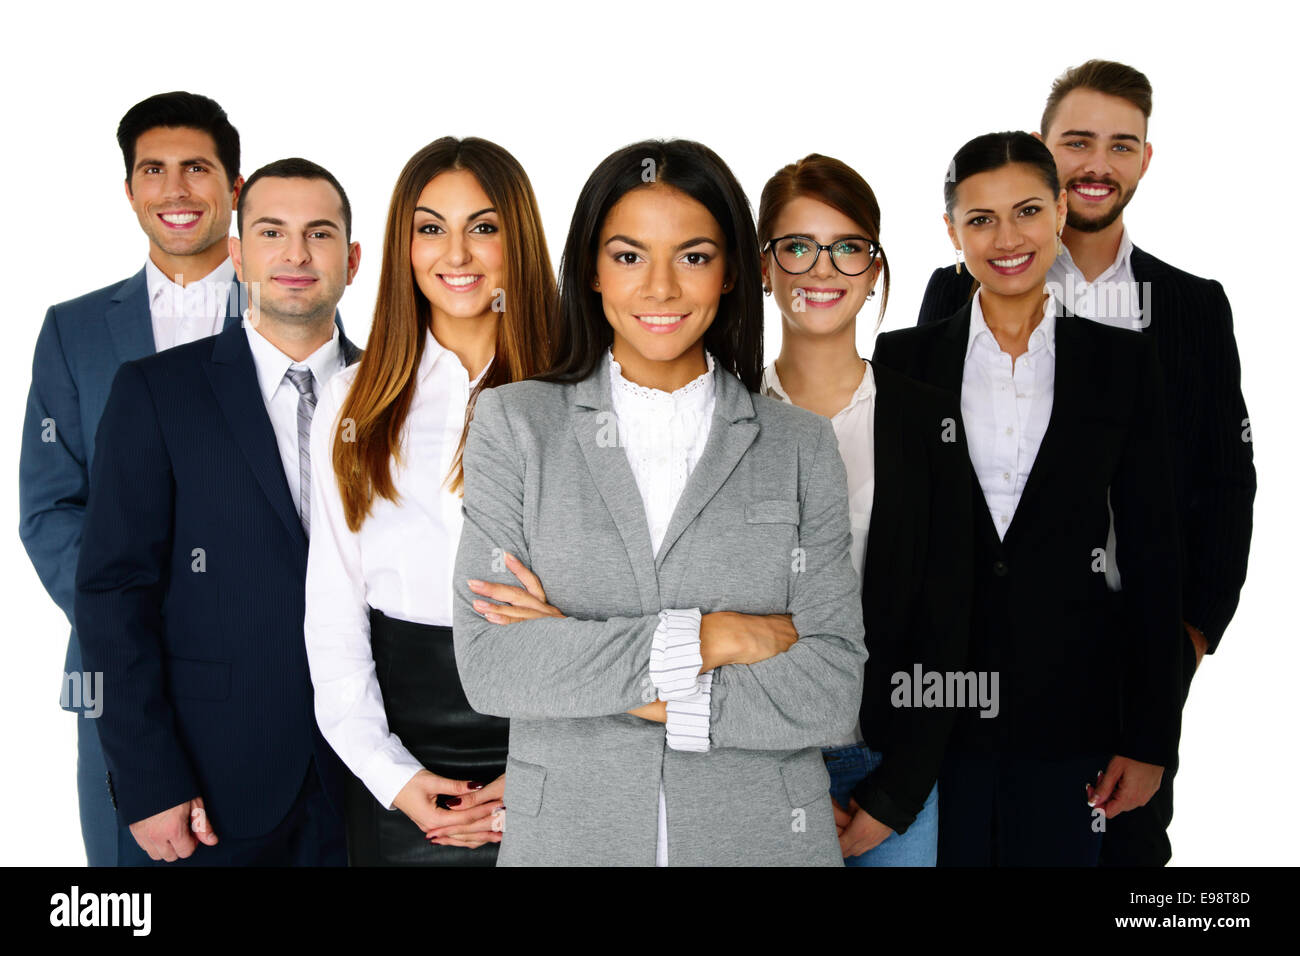 Smiling woman leading her happy team over white background - Stock Image